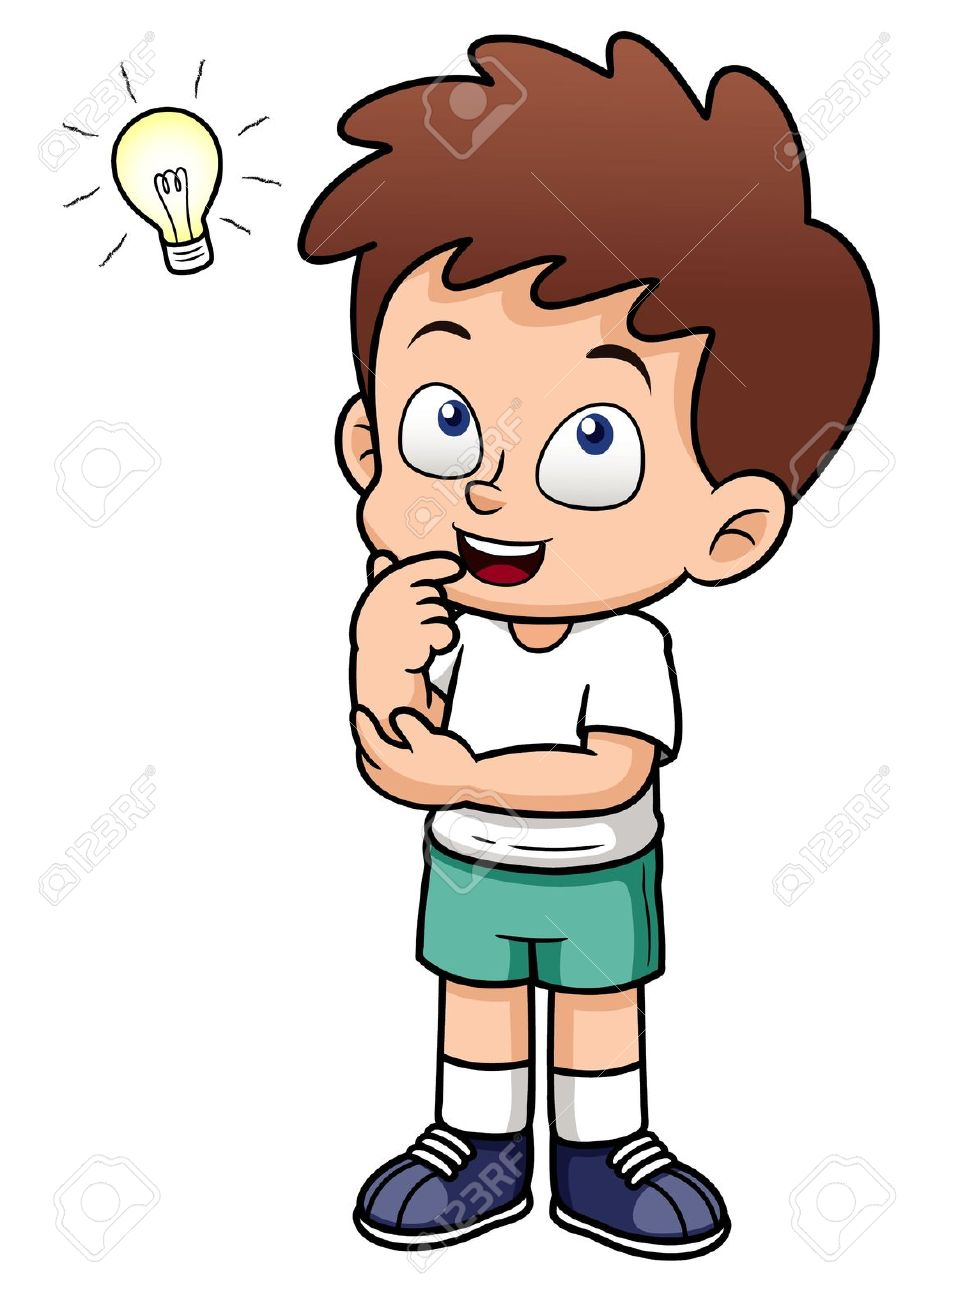 hight resolution of child thinking clipart 14285 boy thinking clipart